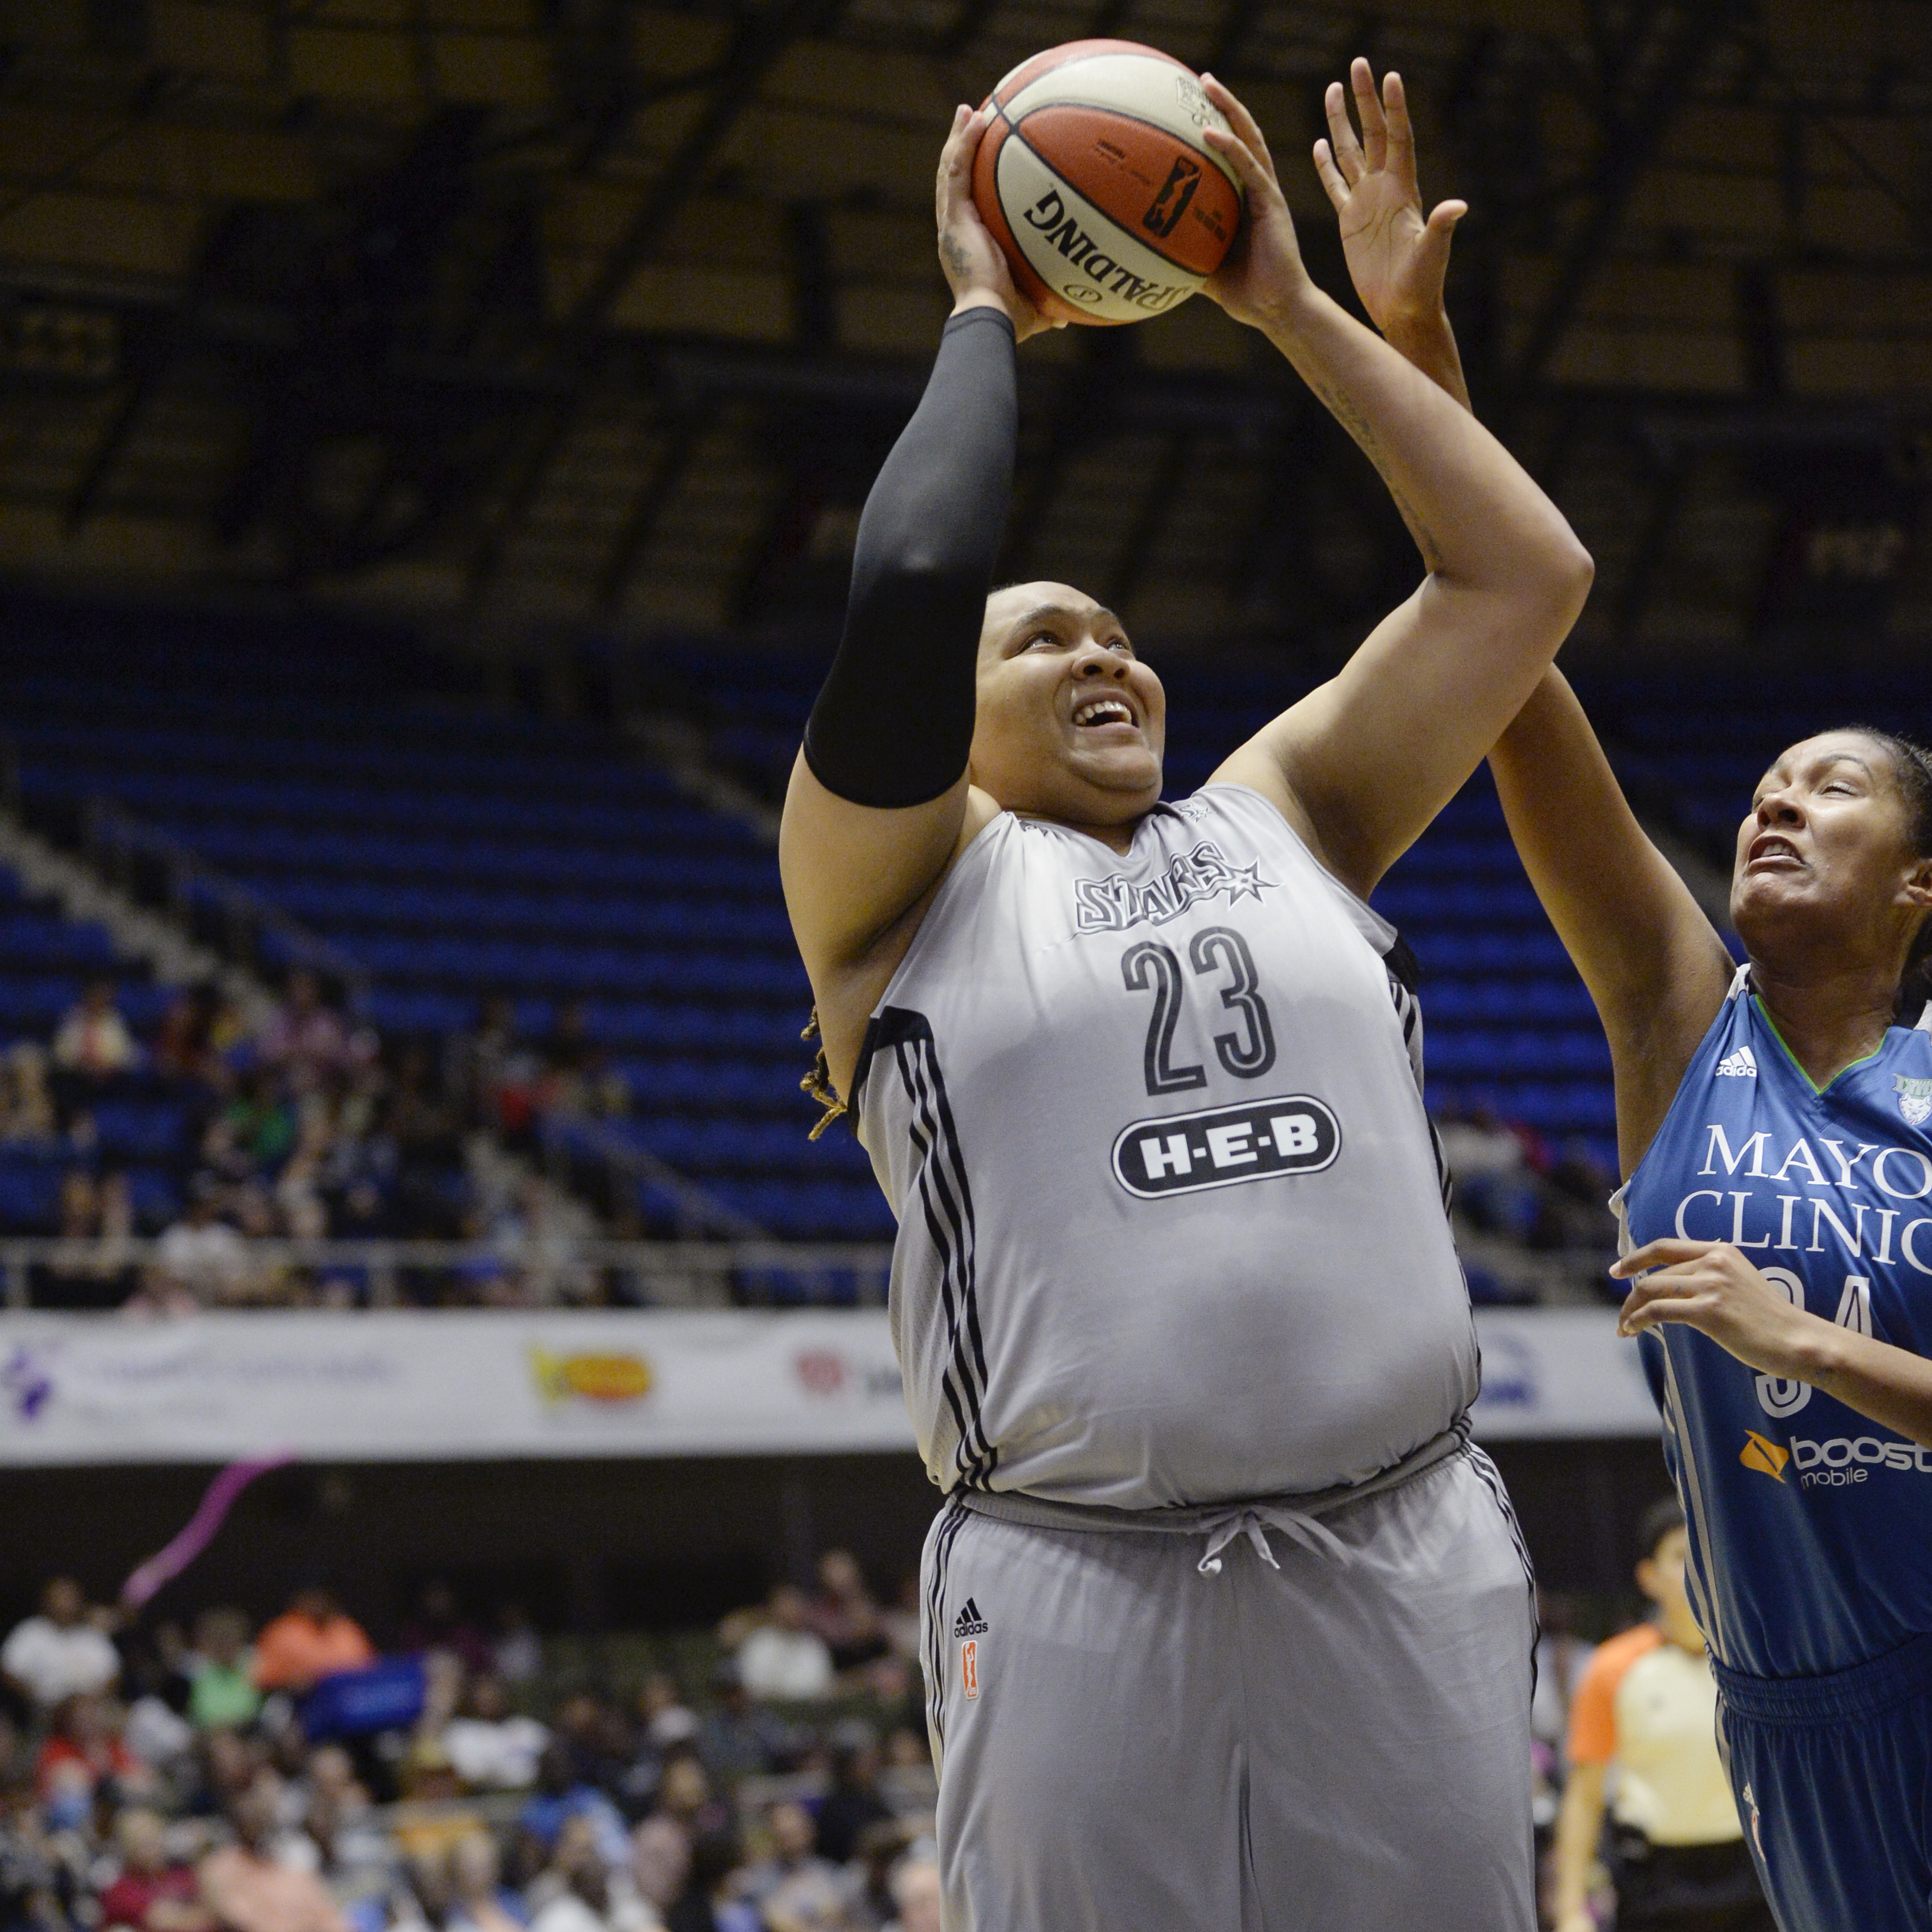 Stars center Danielle Adams had a very quiet game against the Lynx, scoring just two points  in 12 minutes of play.